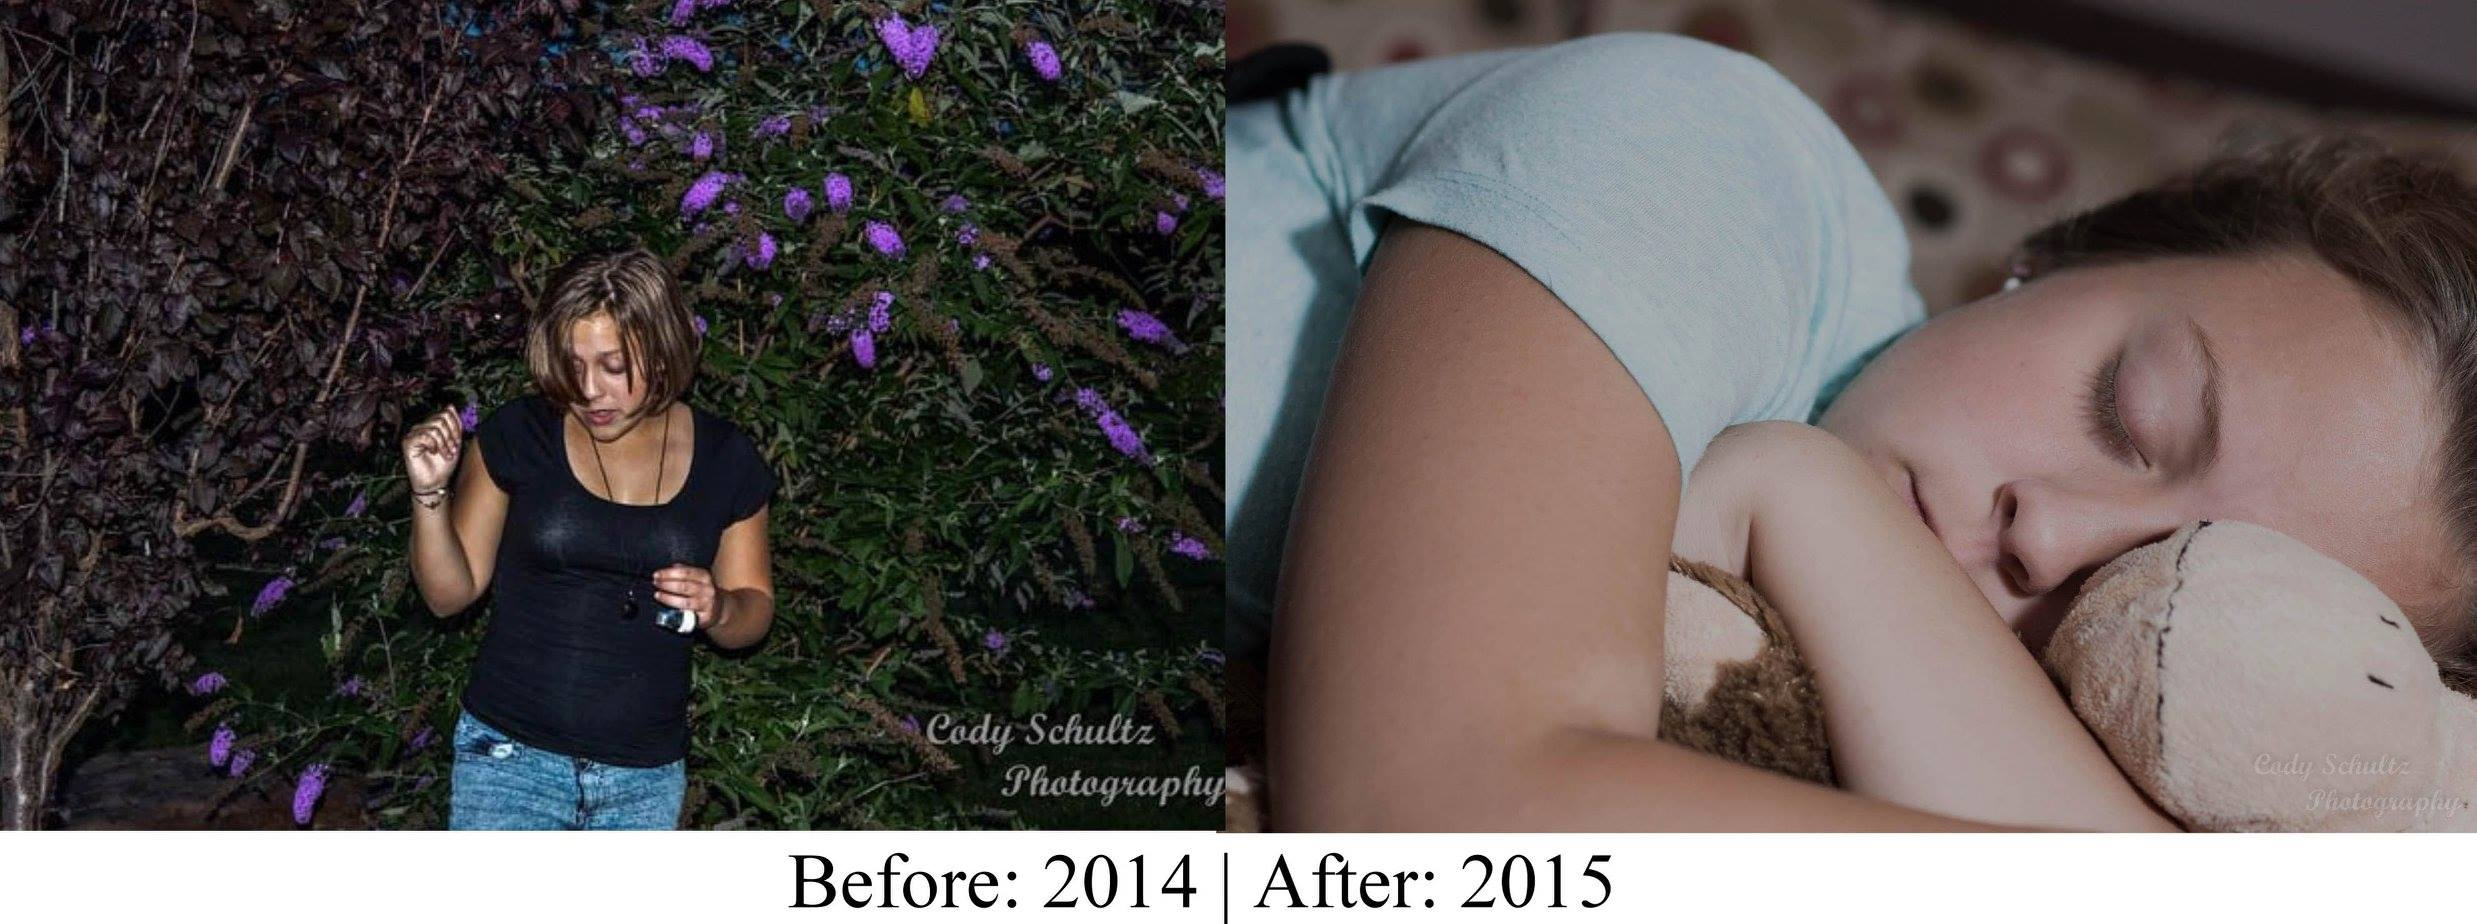 Another side-by-side comparison of my portrait photography to see how much I had improved in one year.